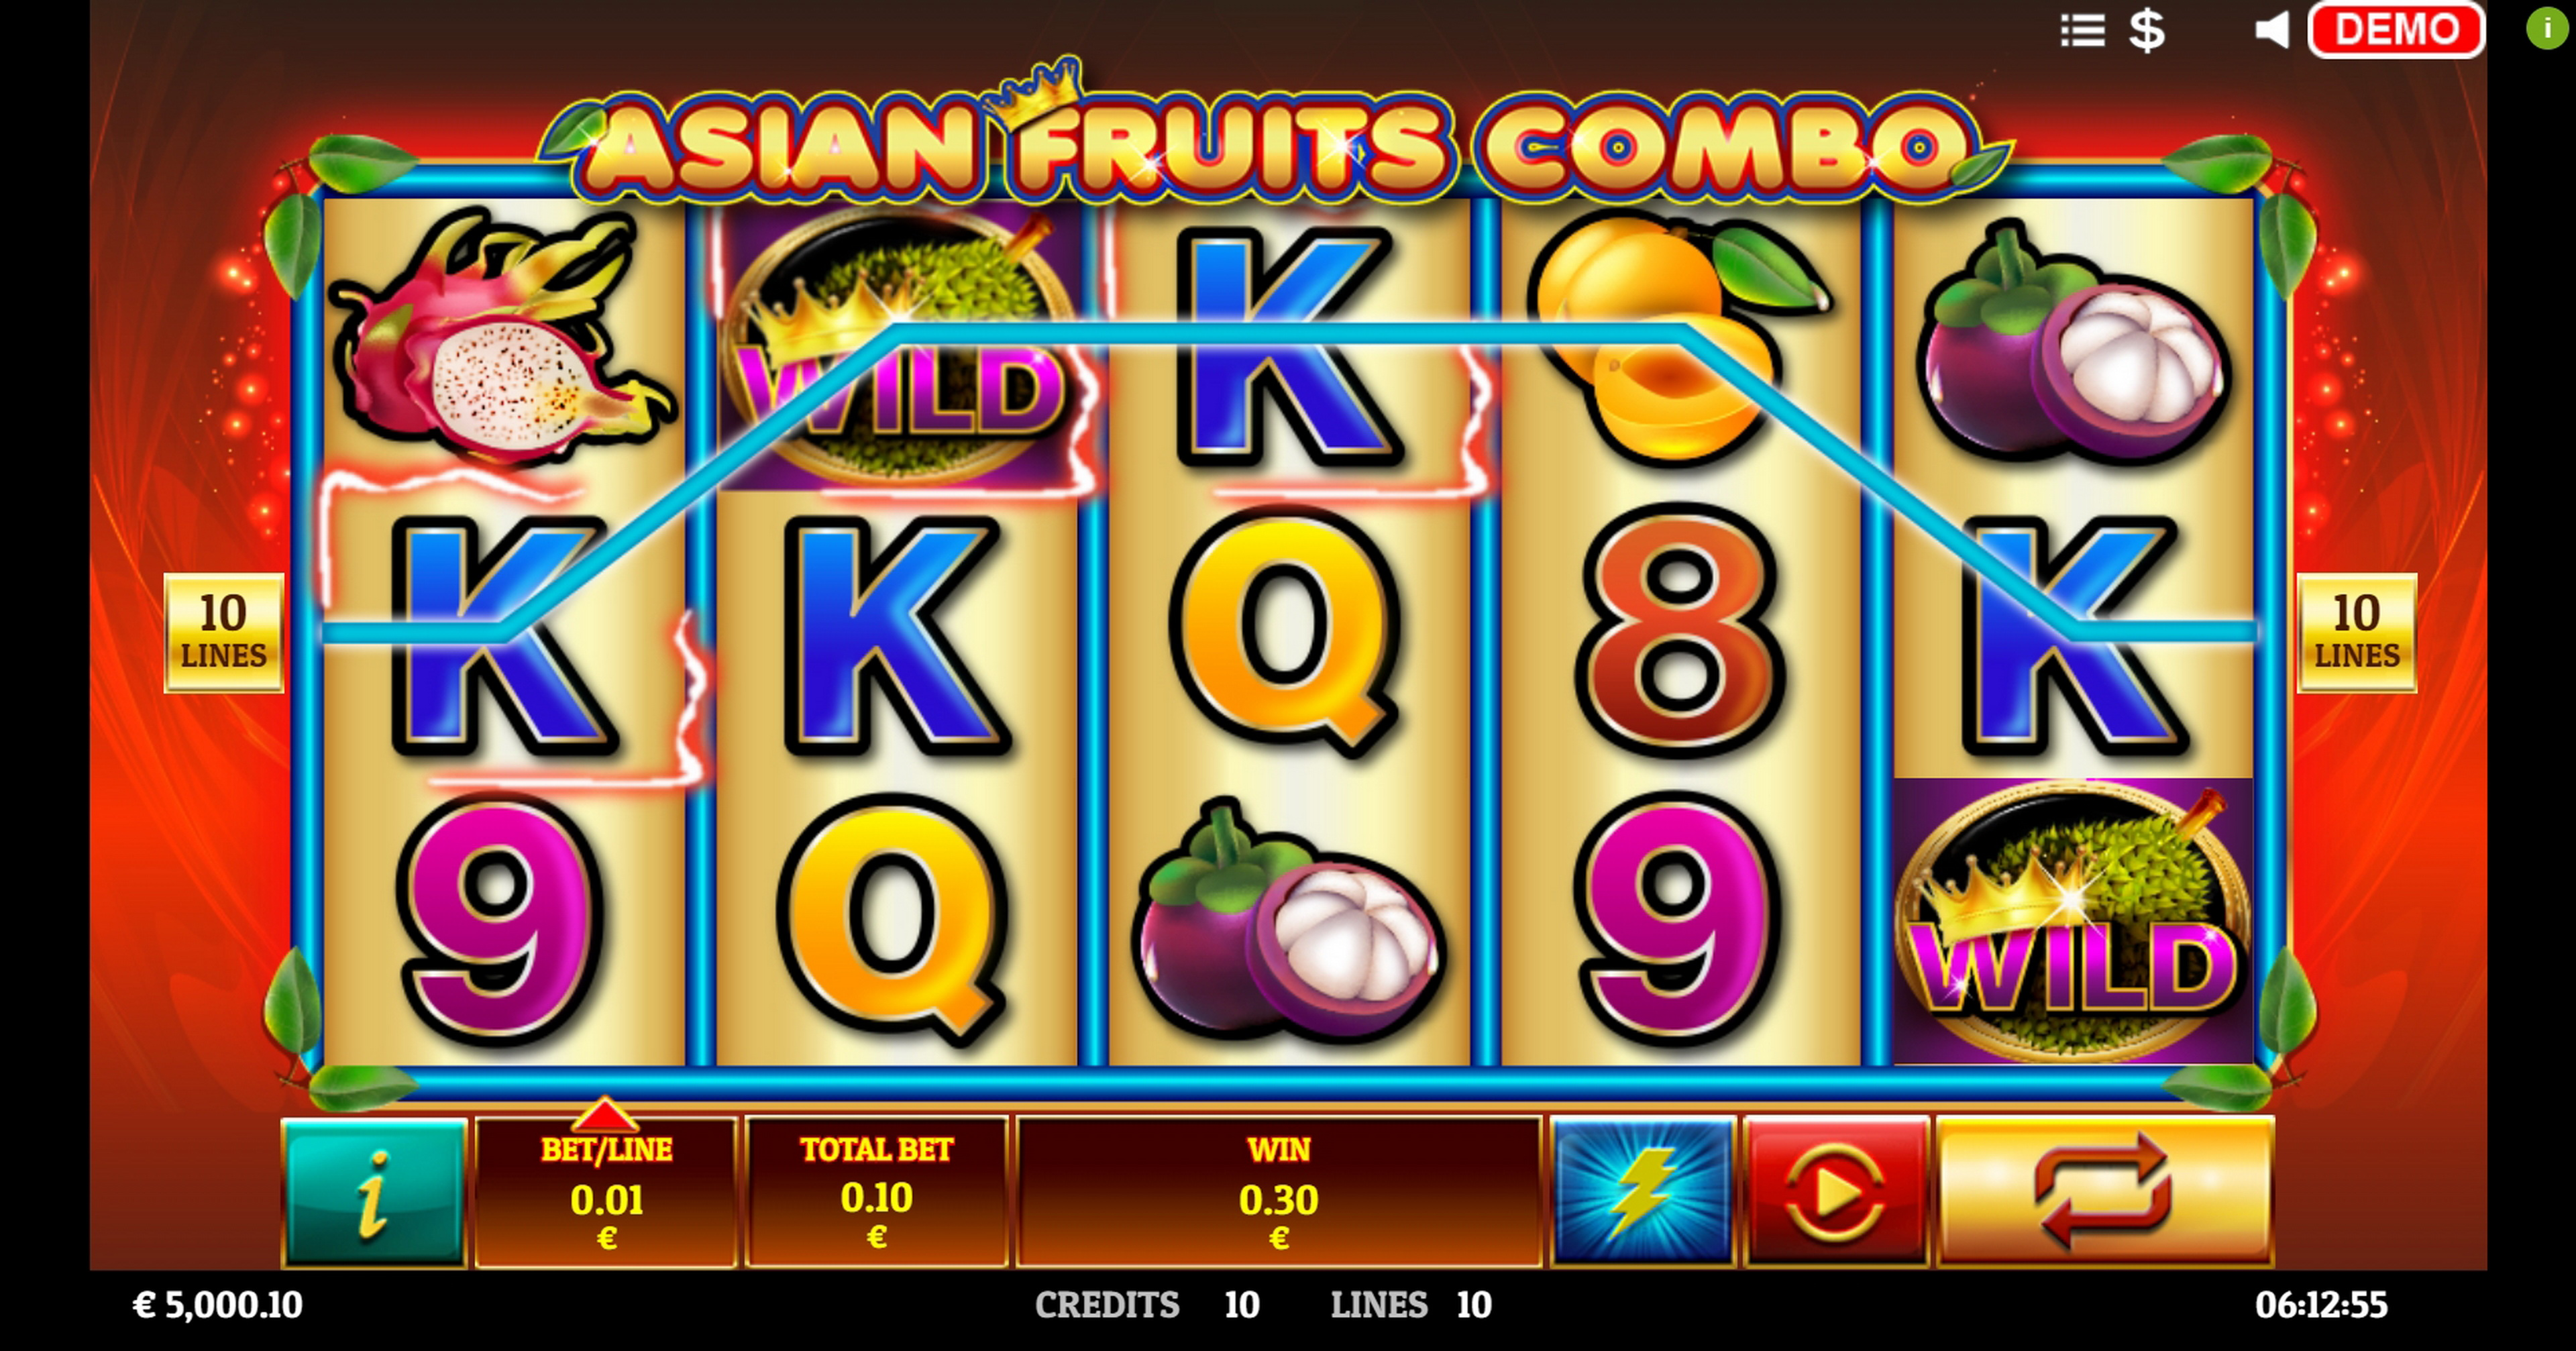 Win Money in Asian Fruit Combo Free Slot Game by Givme Games